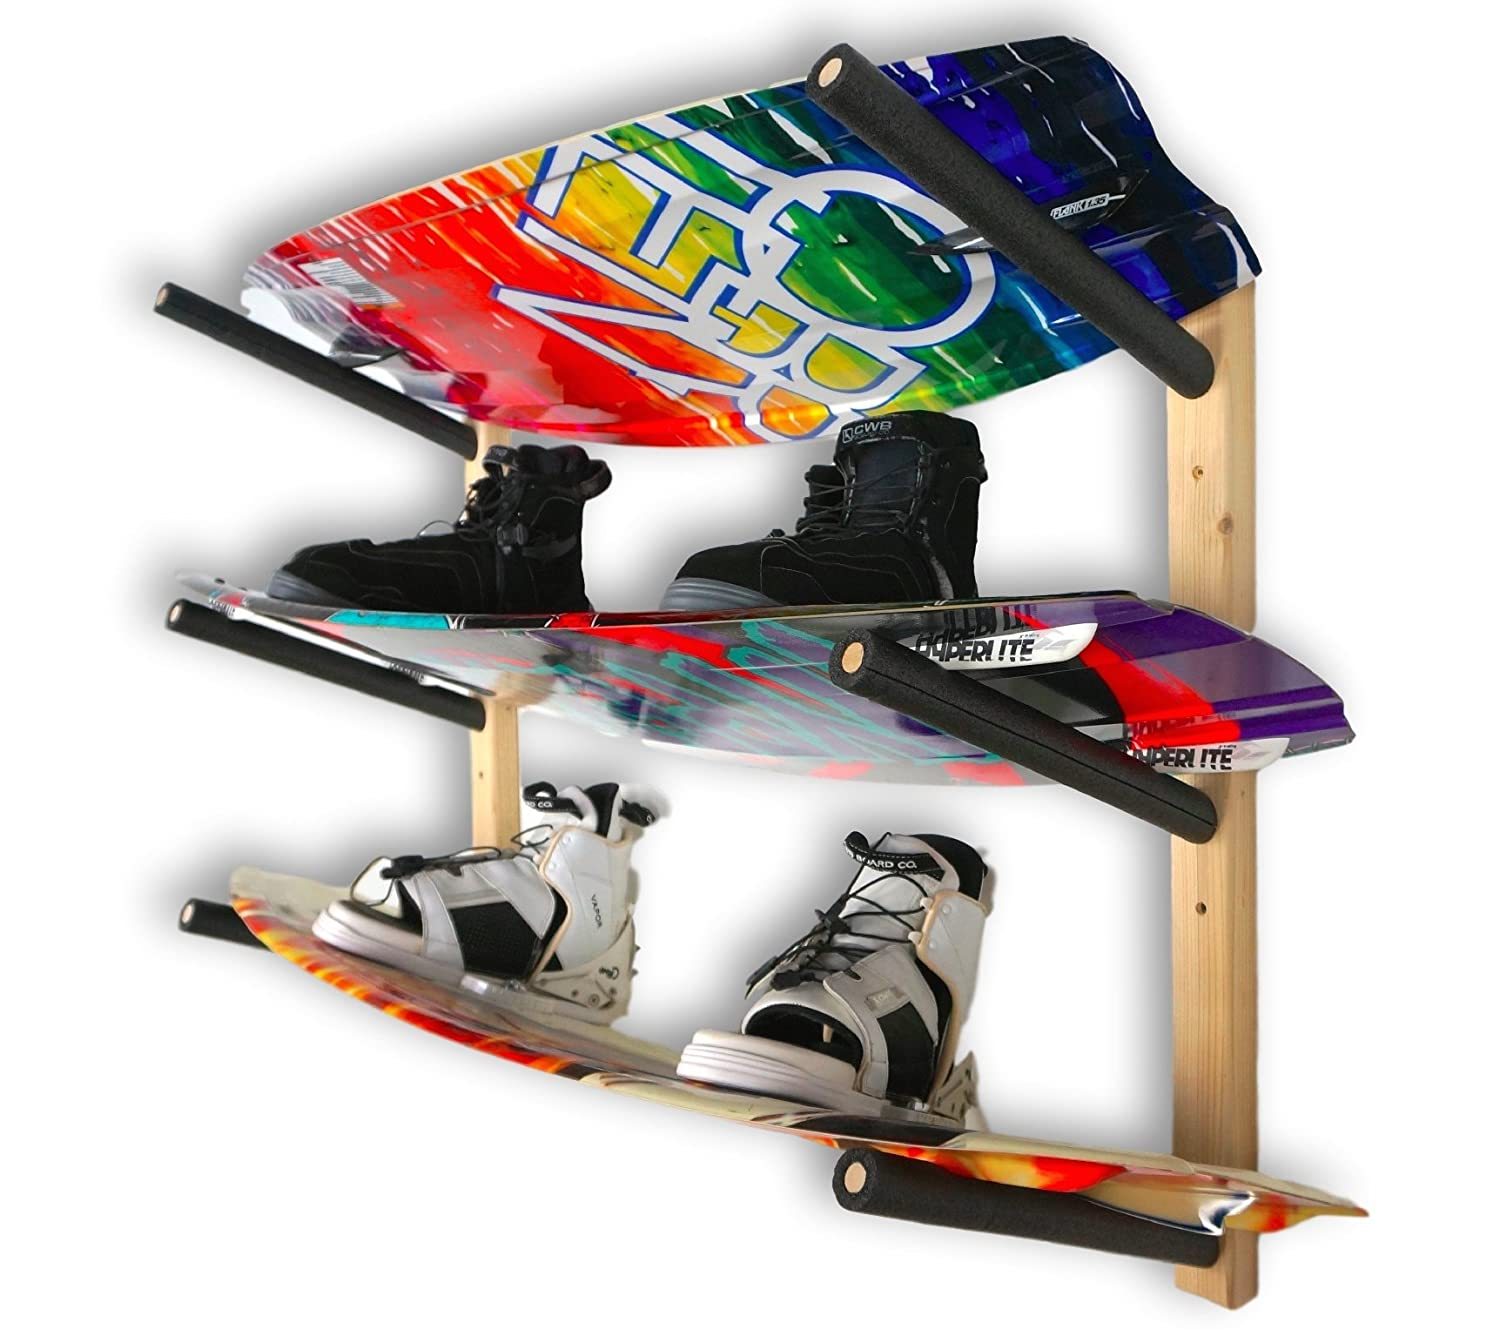 Wakeboard Wall Rack | Basic Wakeboard by Wood Wakeboard Rack Rack | 3 Boards | StoreYourBoard by StoreYourBoard B00SGAB1QS, 延寿庵:9364c372 --- ijpba.info